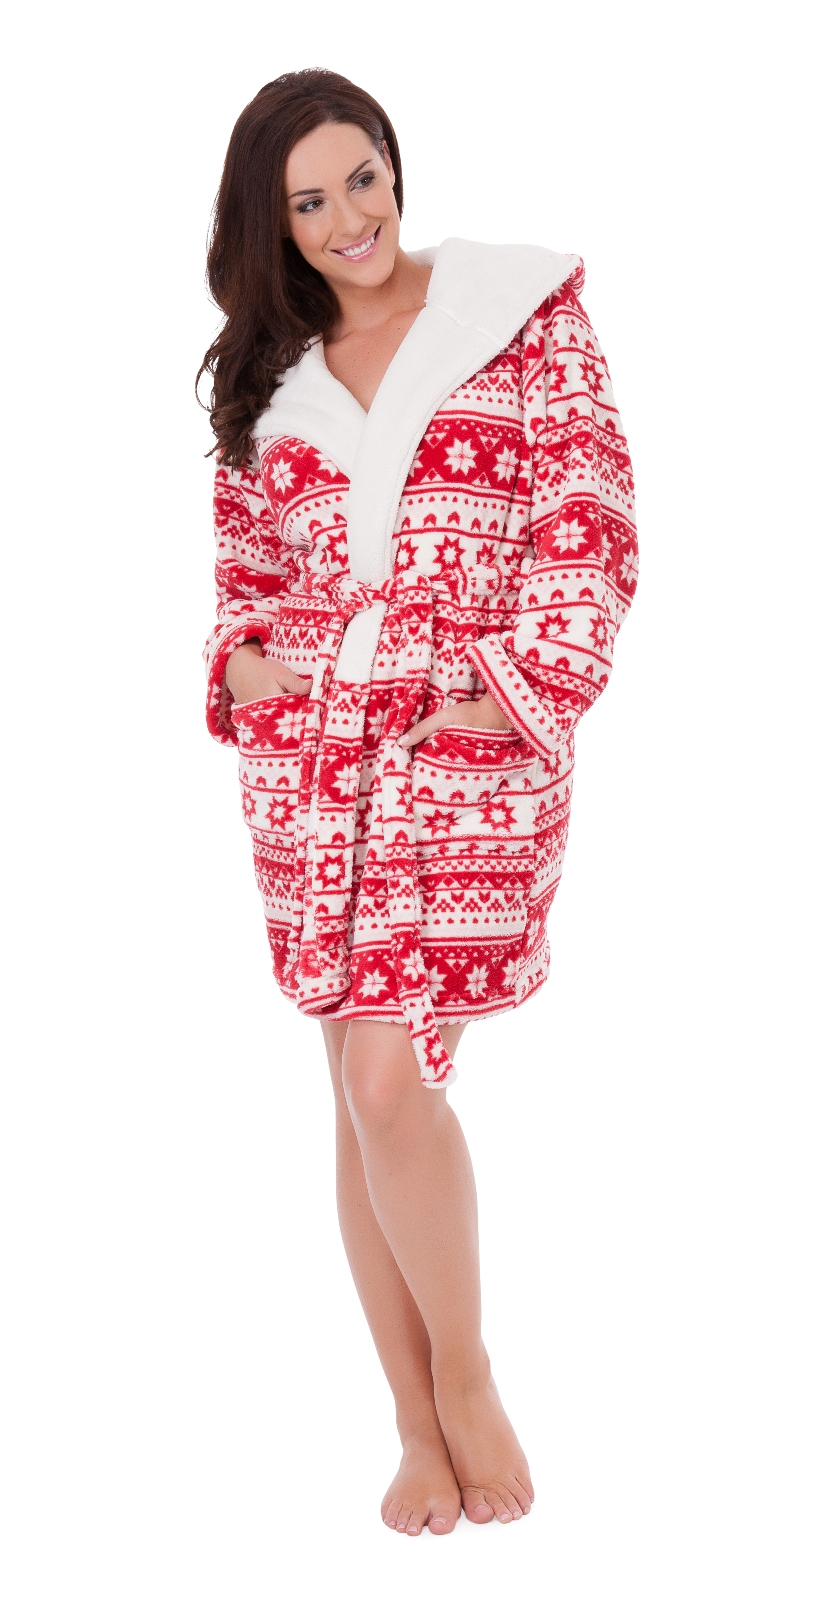 Ladies fleece mini robe with shawl collar. Roomy and well sized for a relaxed fit, you can snuggle up in the luxuriously soft fleece fabric and keep warm on those chilly winter evenings.